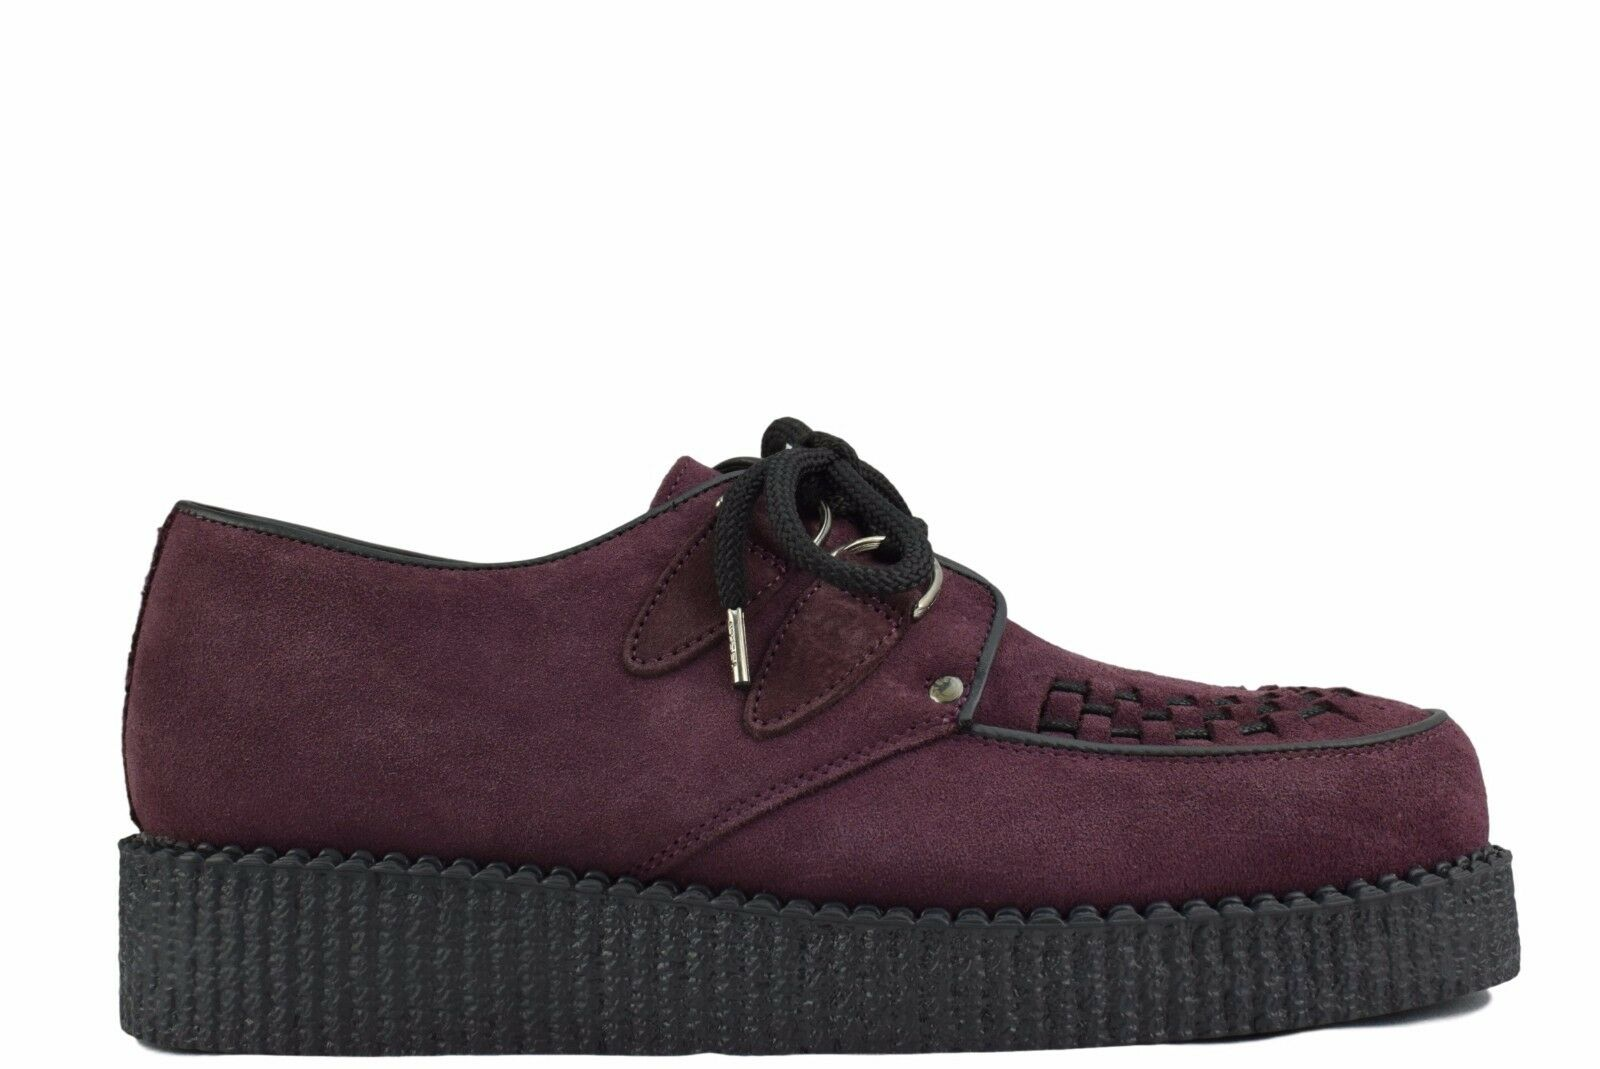 Steel Ground D Schuhes Burgundy ROT Suede Creepers Niedrig Sole D Ground Ring Casual Sc400Z274 35c200